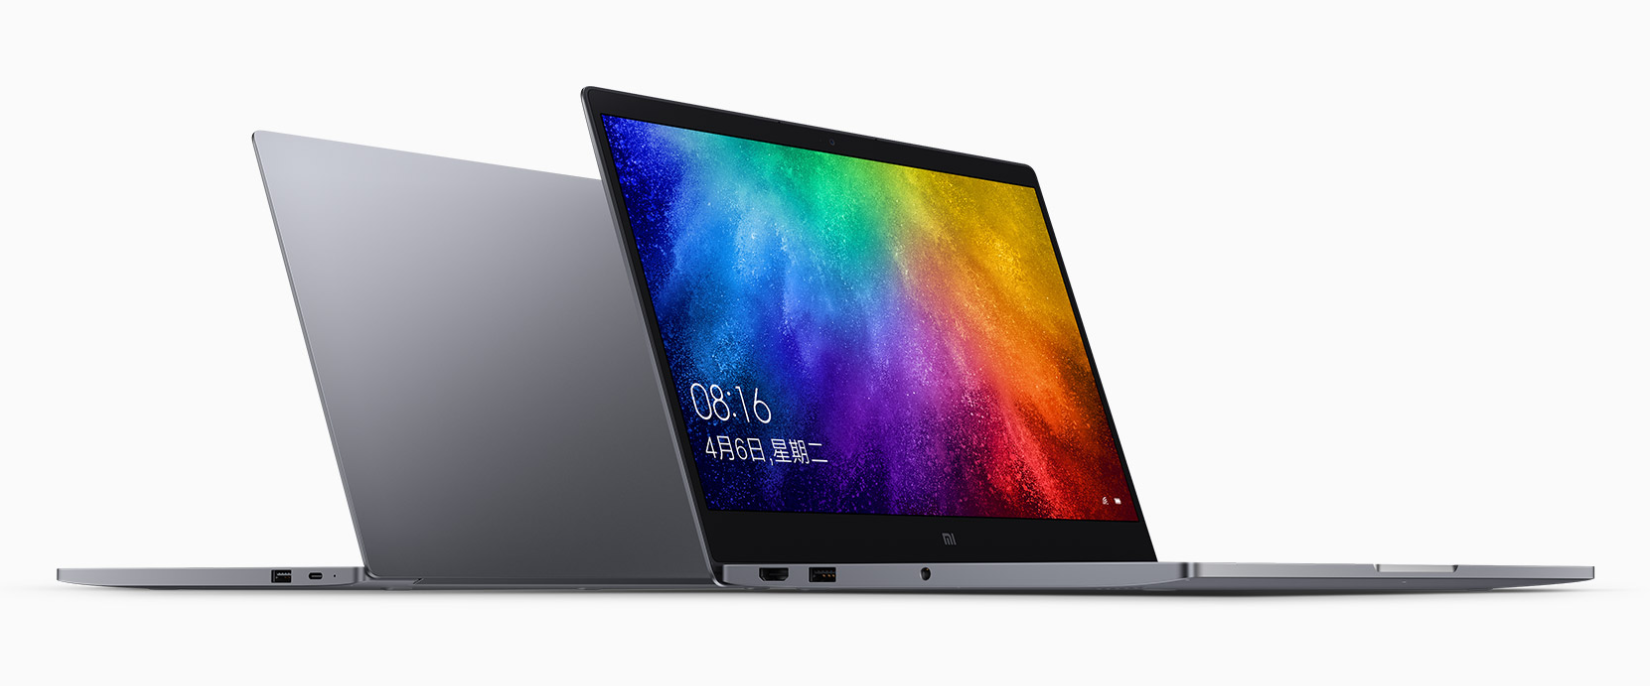 Xiaomi Mi Air Notebook i5 8250U 8 / 256 GB MX150 - Banggood